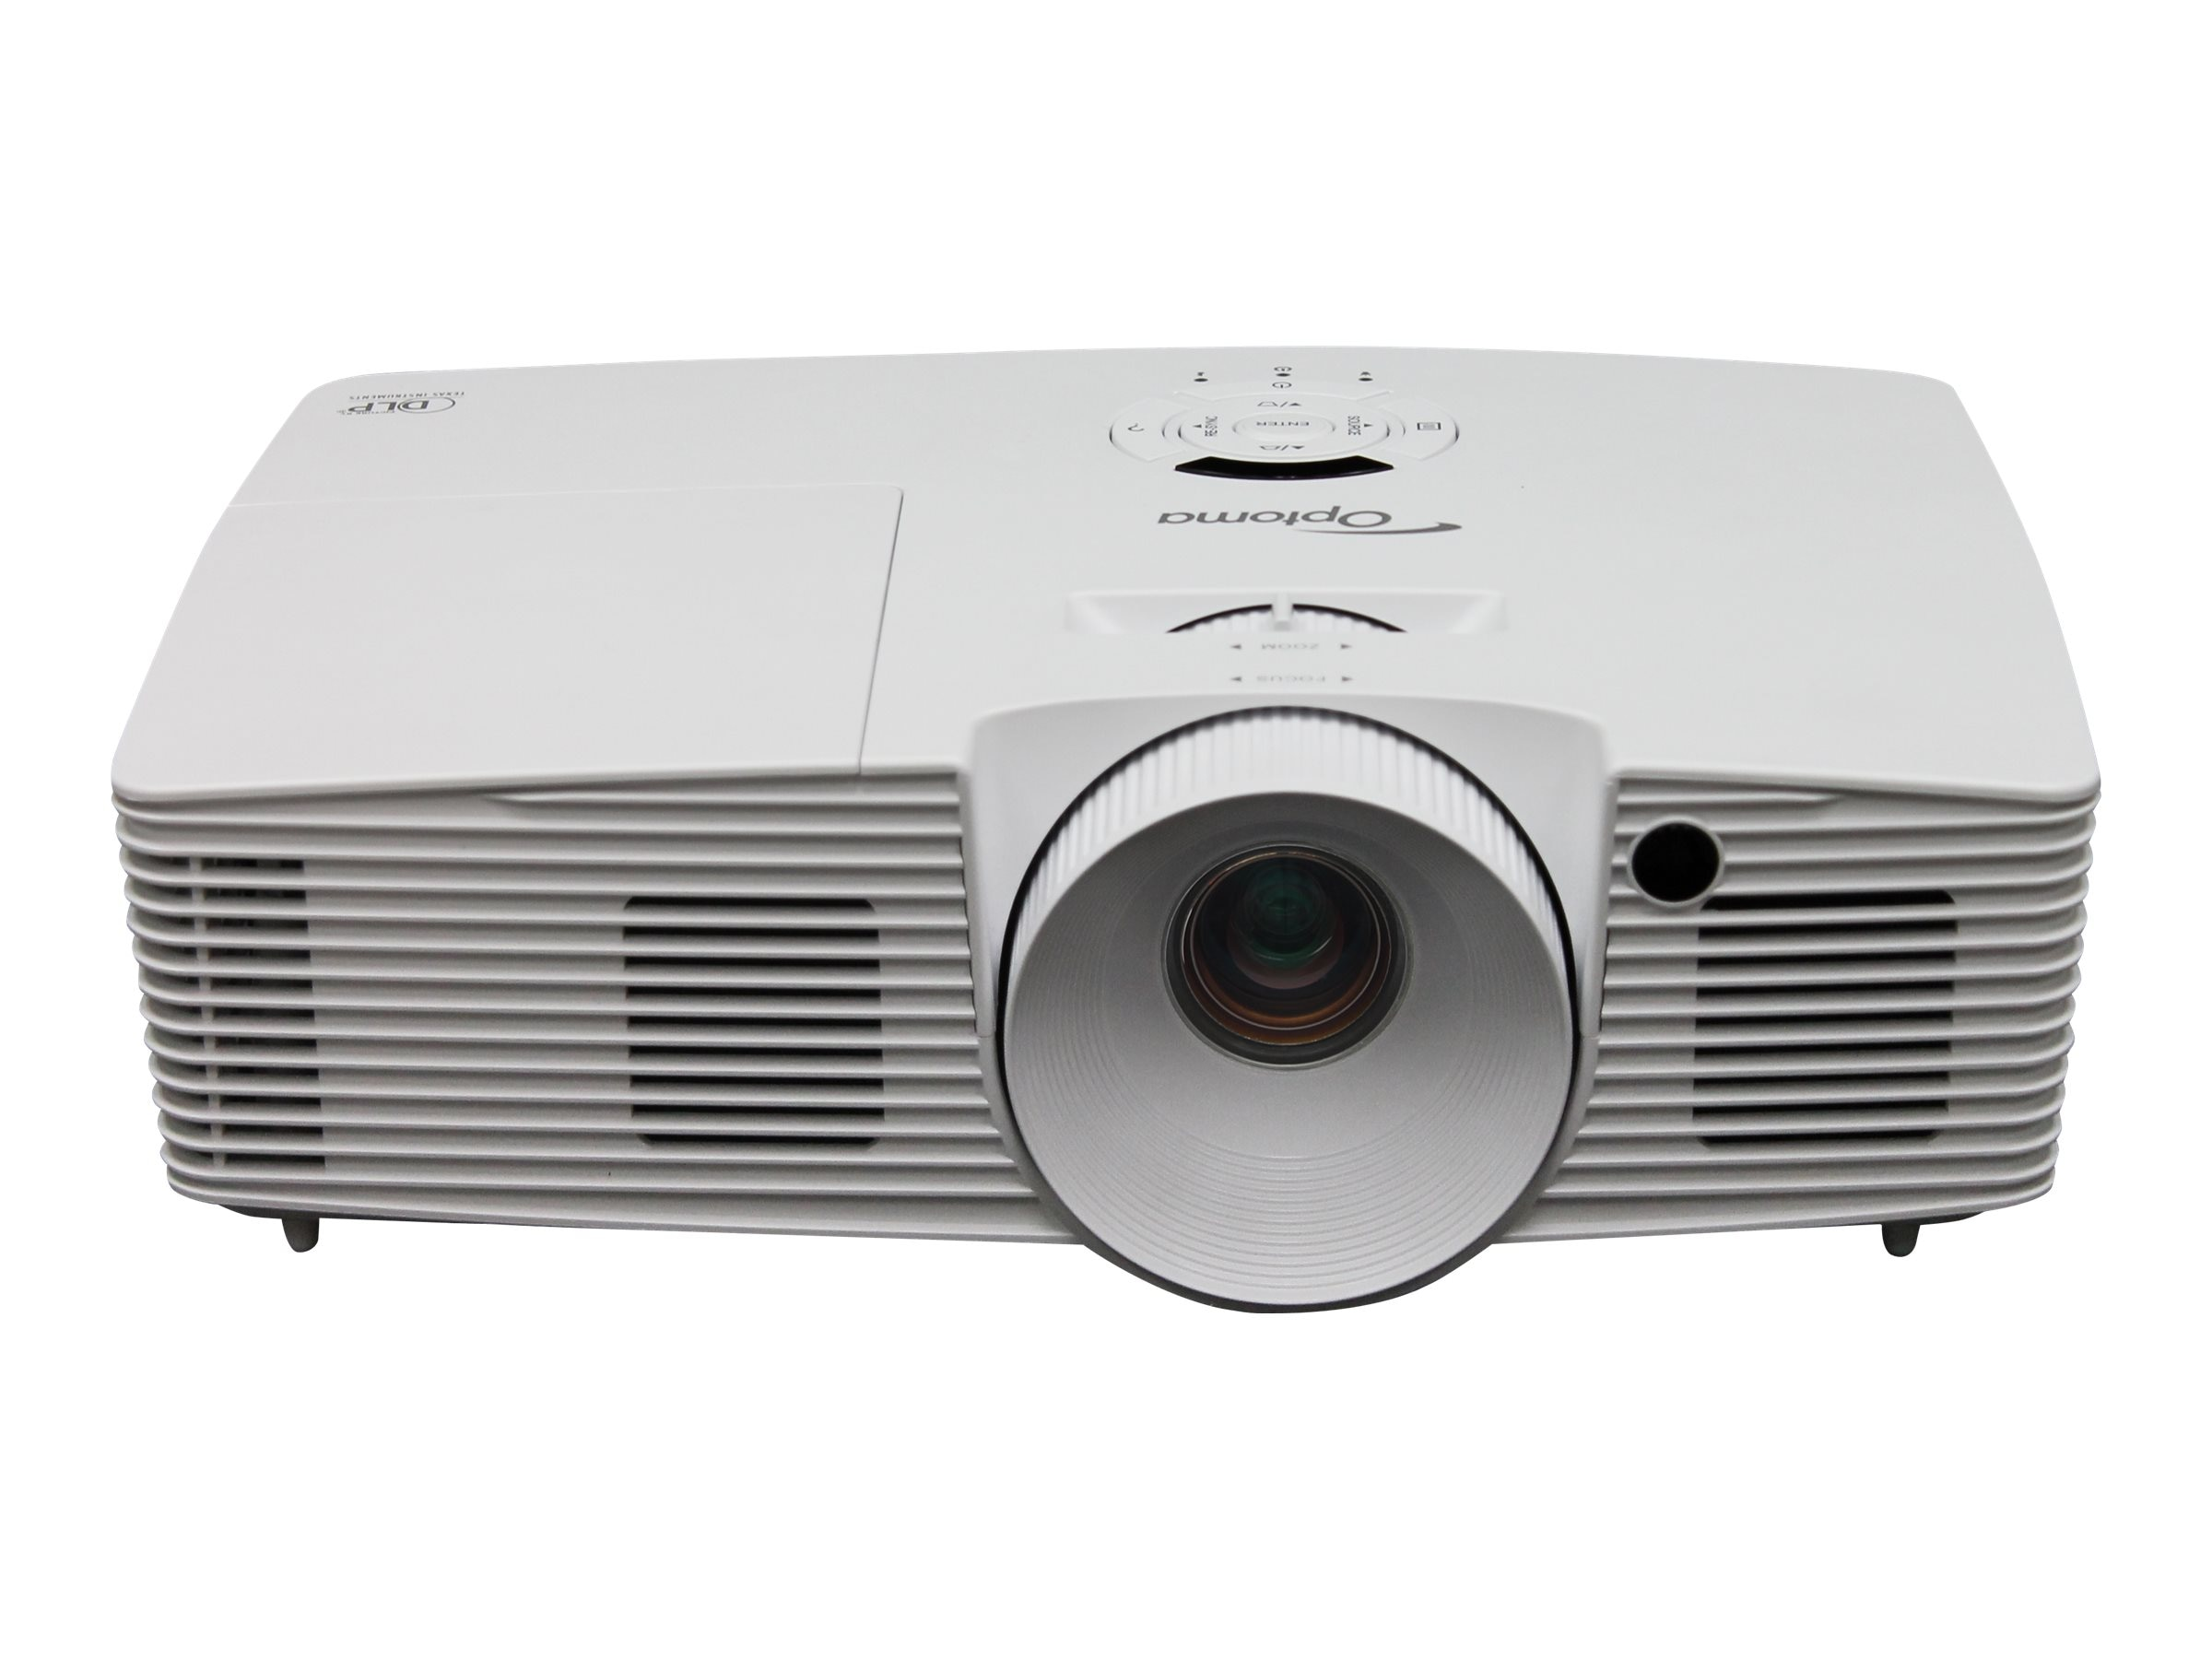 Optoma Technology DH1012 Image 2